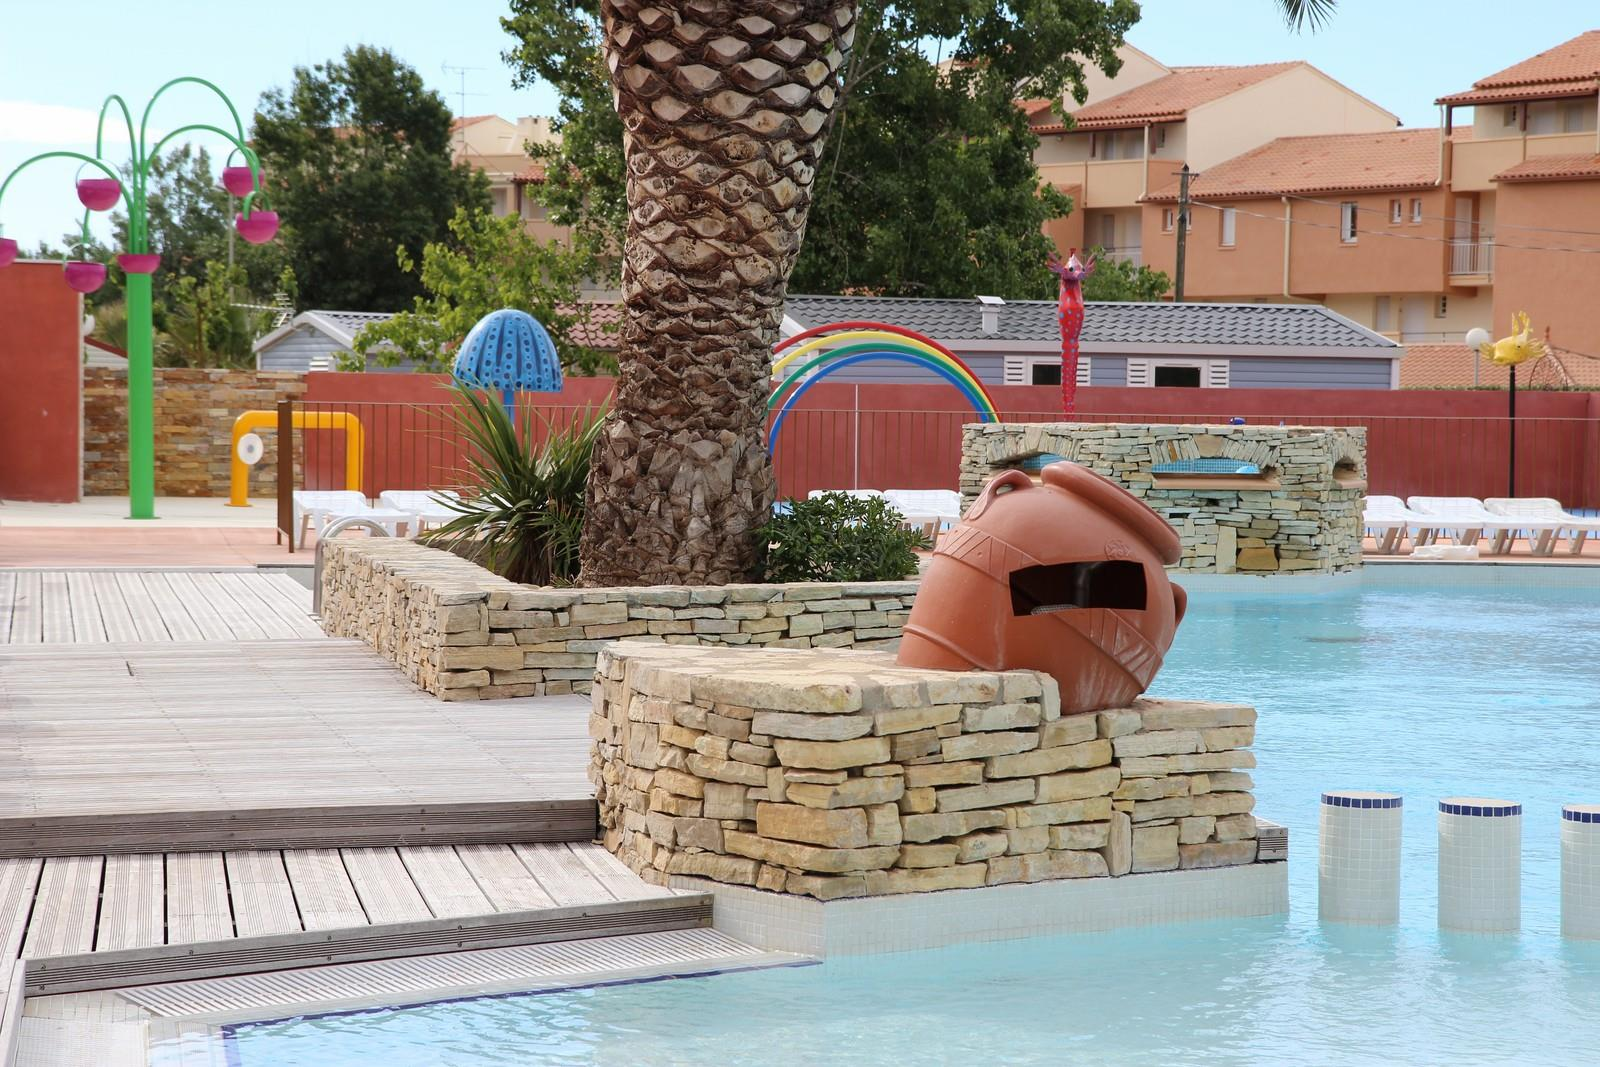 Establishment Camping Le Mas de la Plage - Vias Plage